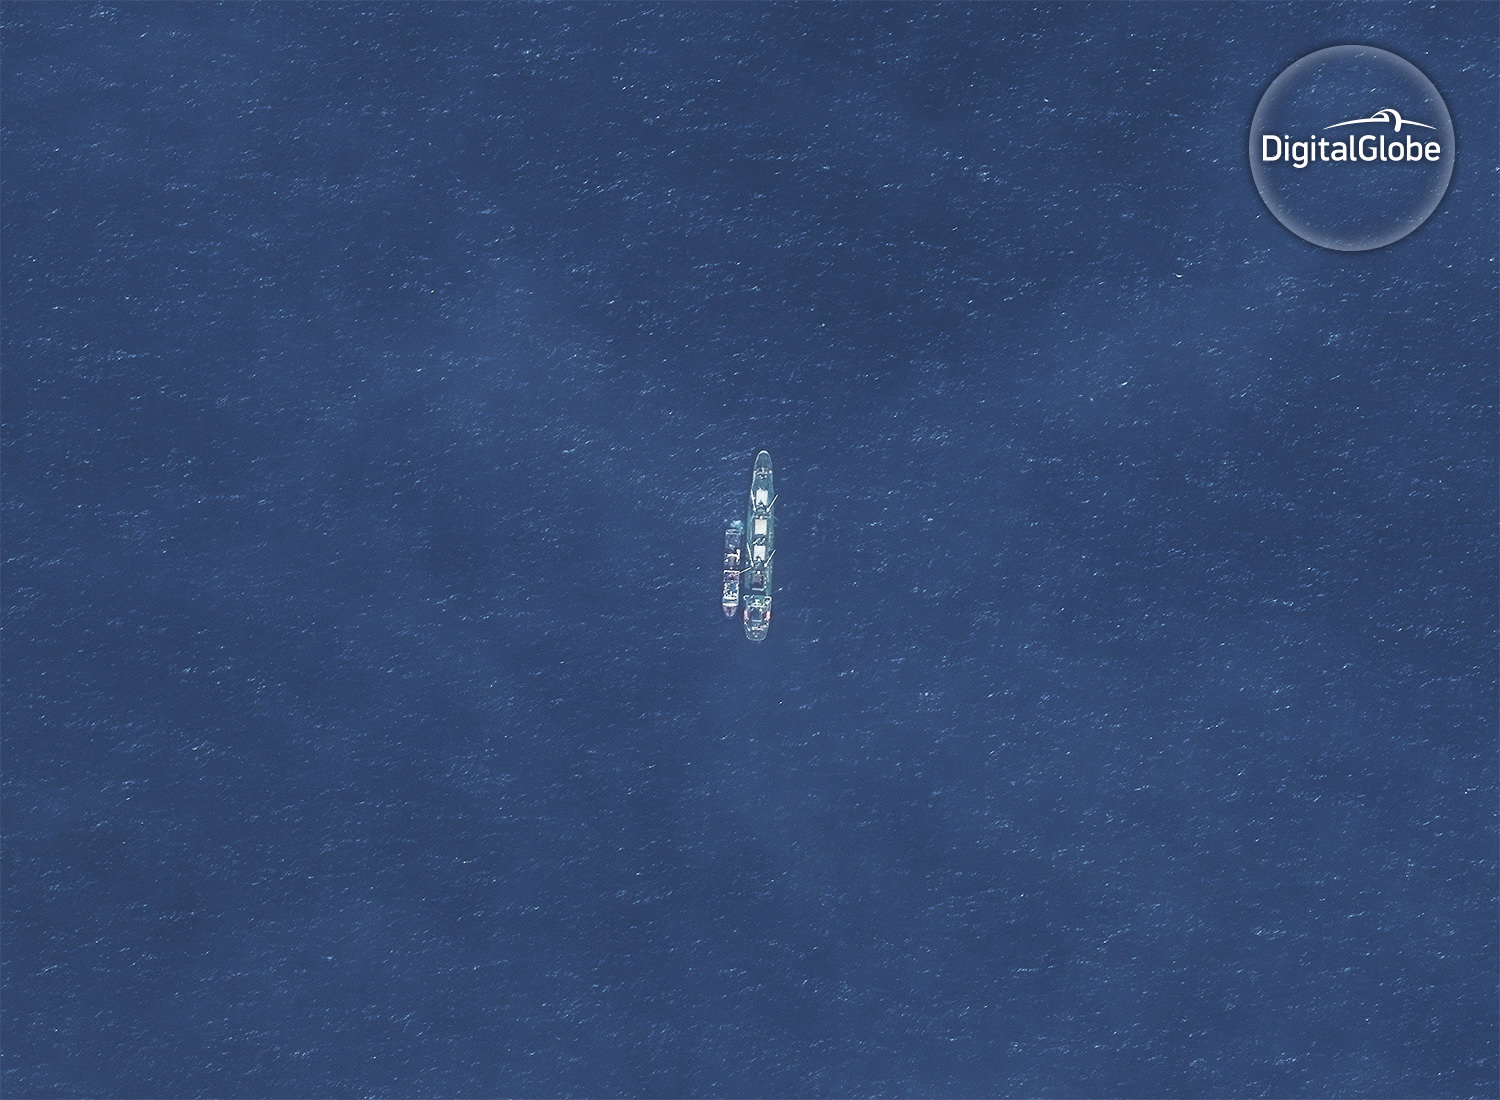 Credit line: Imagery by DigitalGlobe © 2017 -The Hai Feng 648 is with an unidentified fishing vessel off the coast of Argentina. There is a large mostly Chinese squid fleet just beyond the EEZ boundary. The Hai Feng 648 was previously with the squid fleet at the edge of the Peruvian EEZ and in 2014 took illegally processed catch from the Lafayette into port in Peru. This image was acquired on Nov 30, 2016.